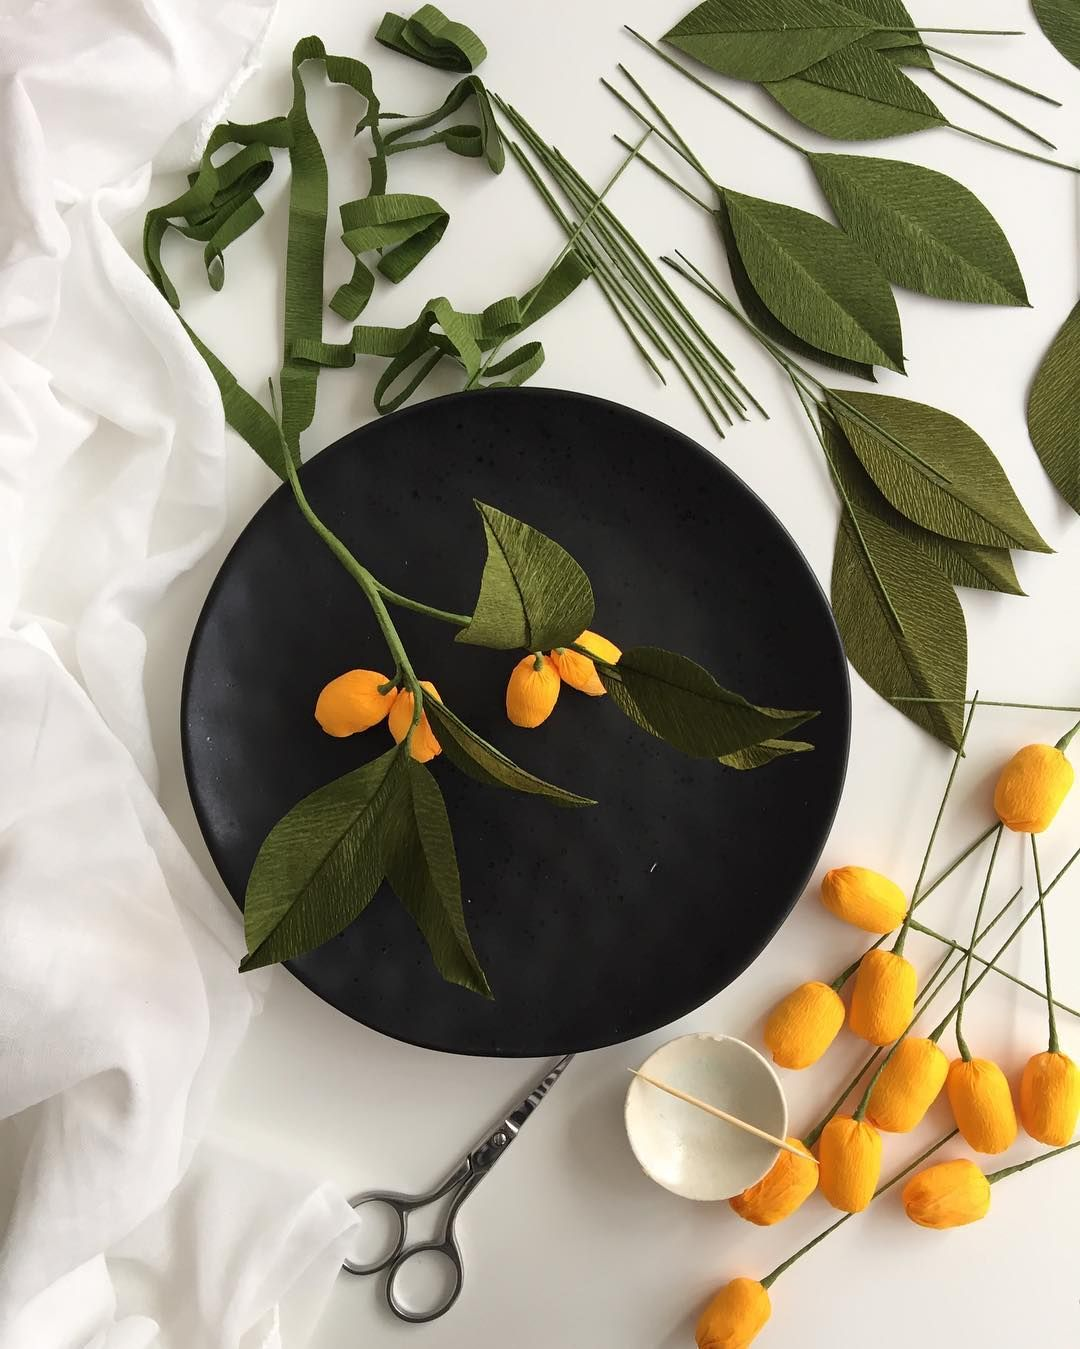 kumquat branches for my next show at kinokuniya sydney 7 months